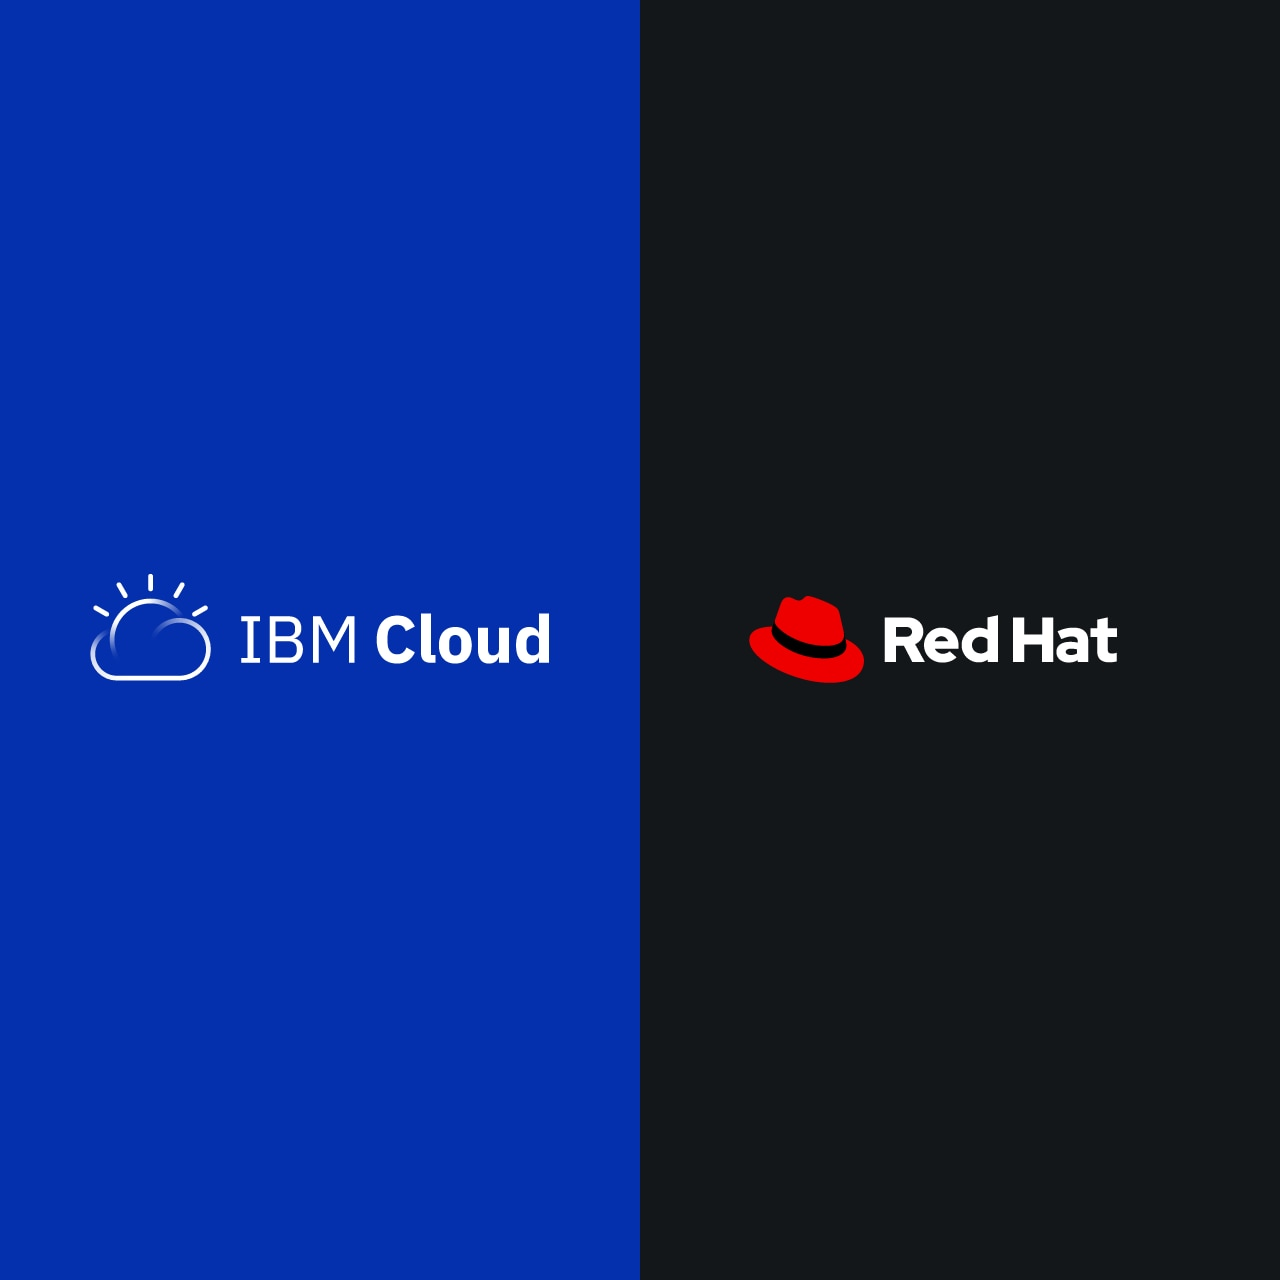 Los logotipos de IBM y Red Hat para Watson Anywhere